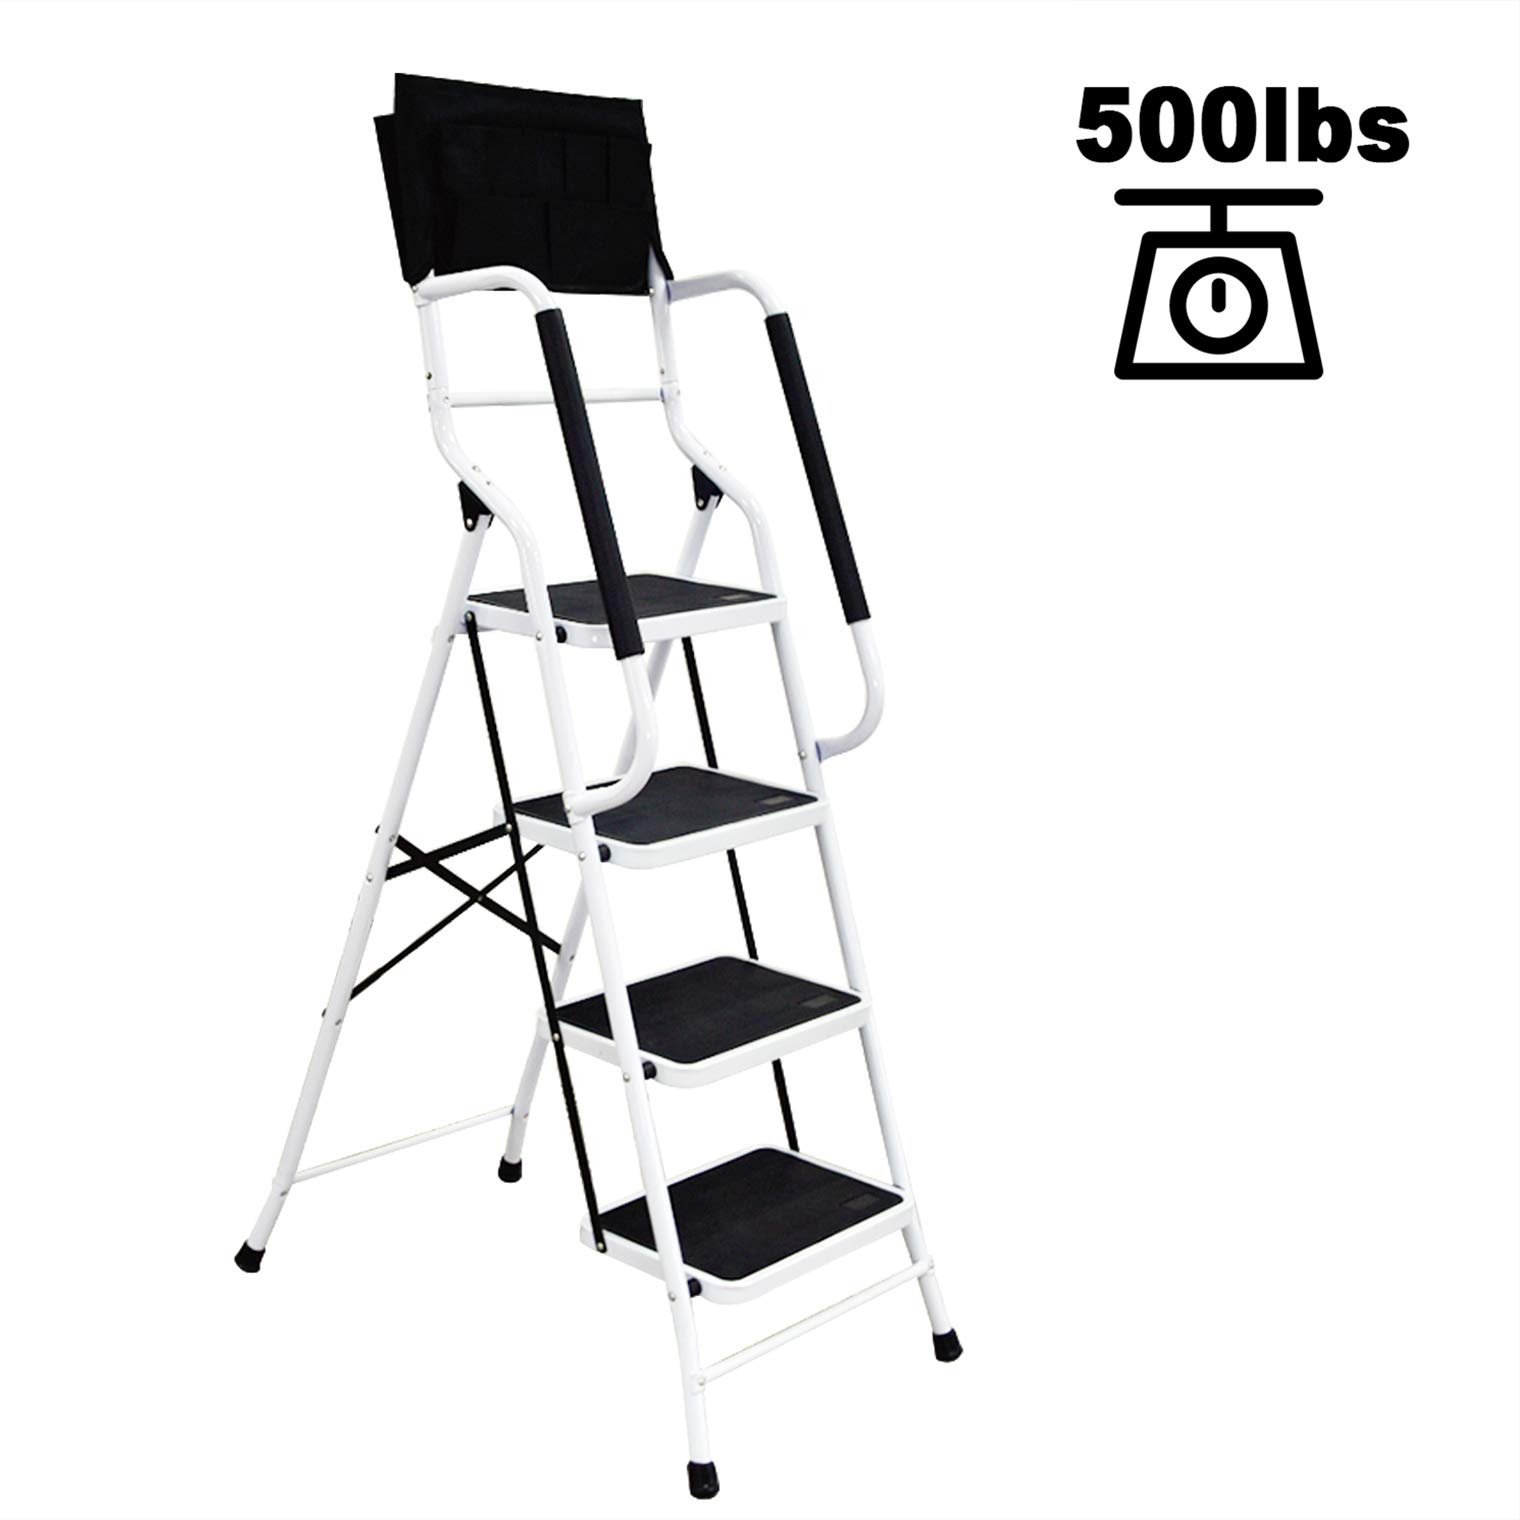 charaHOME 4 Step Ladder Step Stool Folding Portable Ladder Steel Frame with Safety Side Handrails Non-Slip Wide Pedal Kitchen and Home Stepladder with Attachable Tool Bag 500 lb Capacity by charaHOME